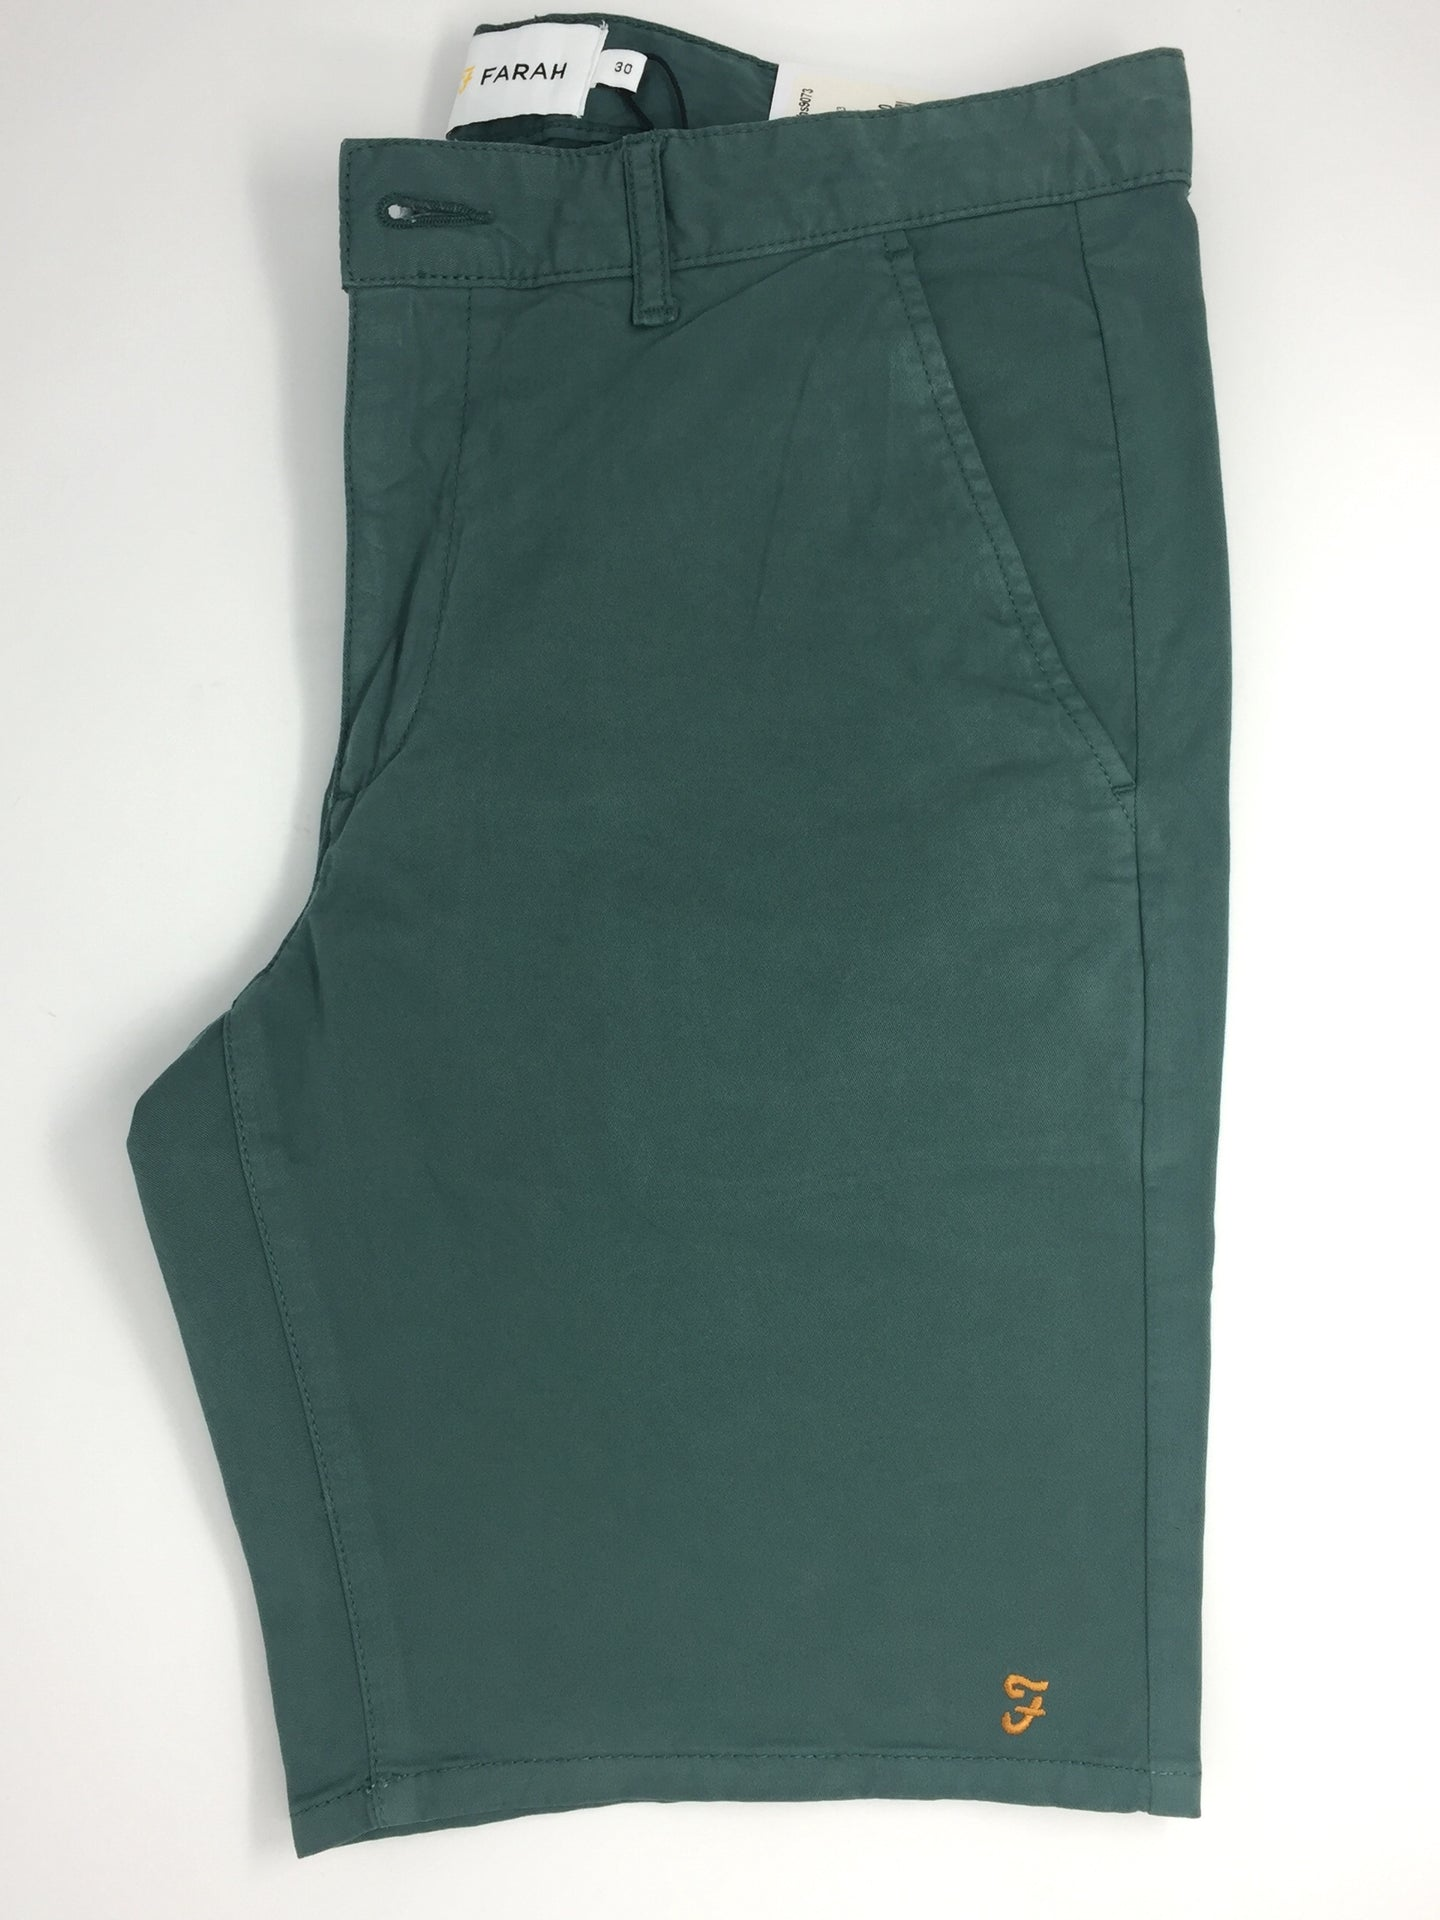 f4hs9073 Farah mens Shorts regular fit Green Biscuit (353) stocked online ireland